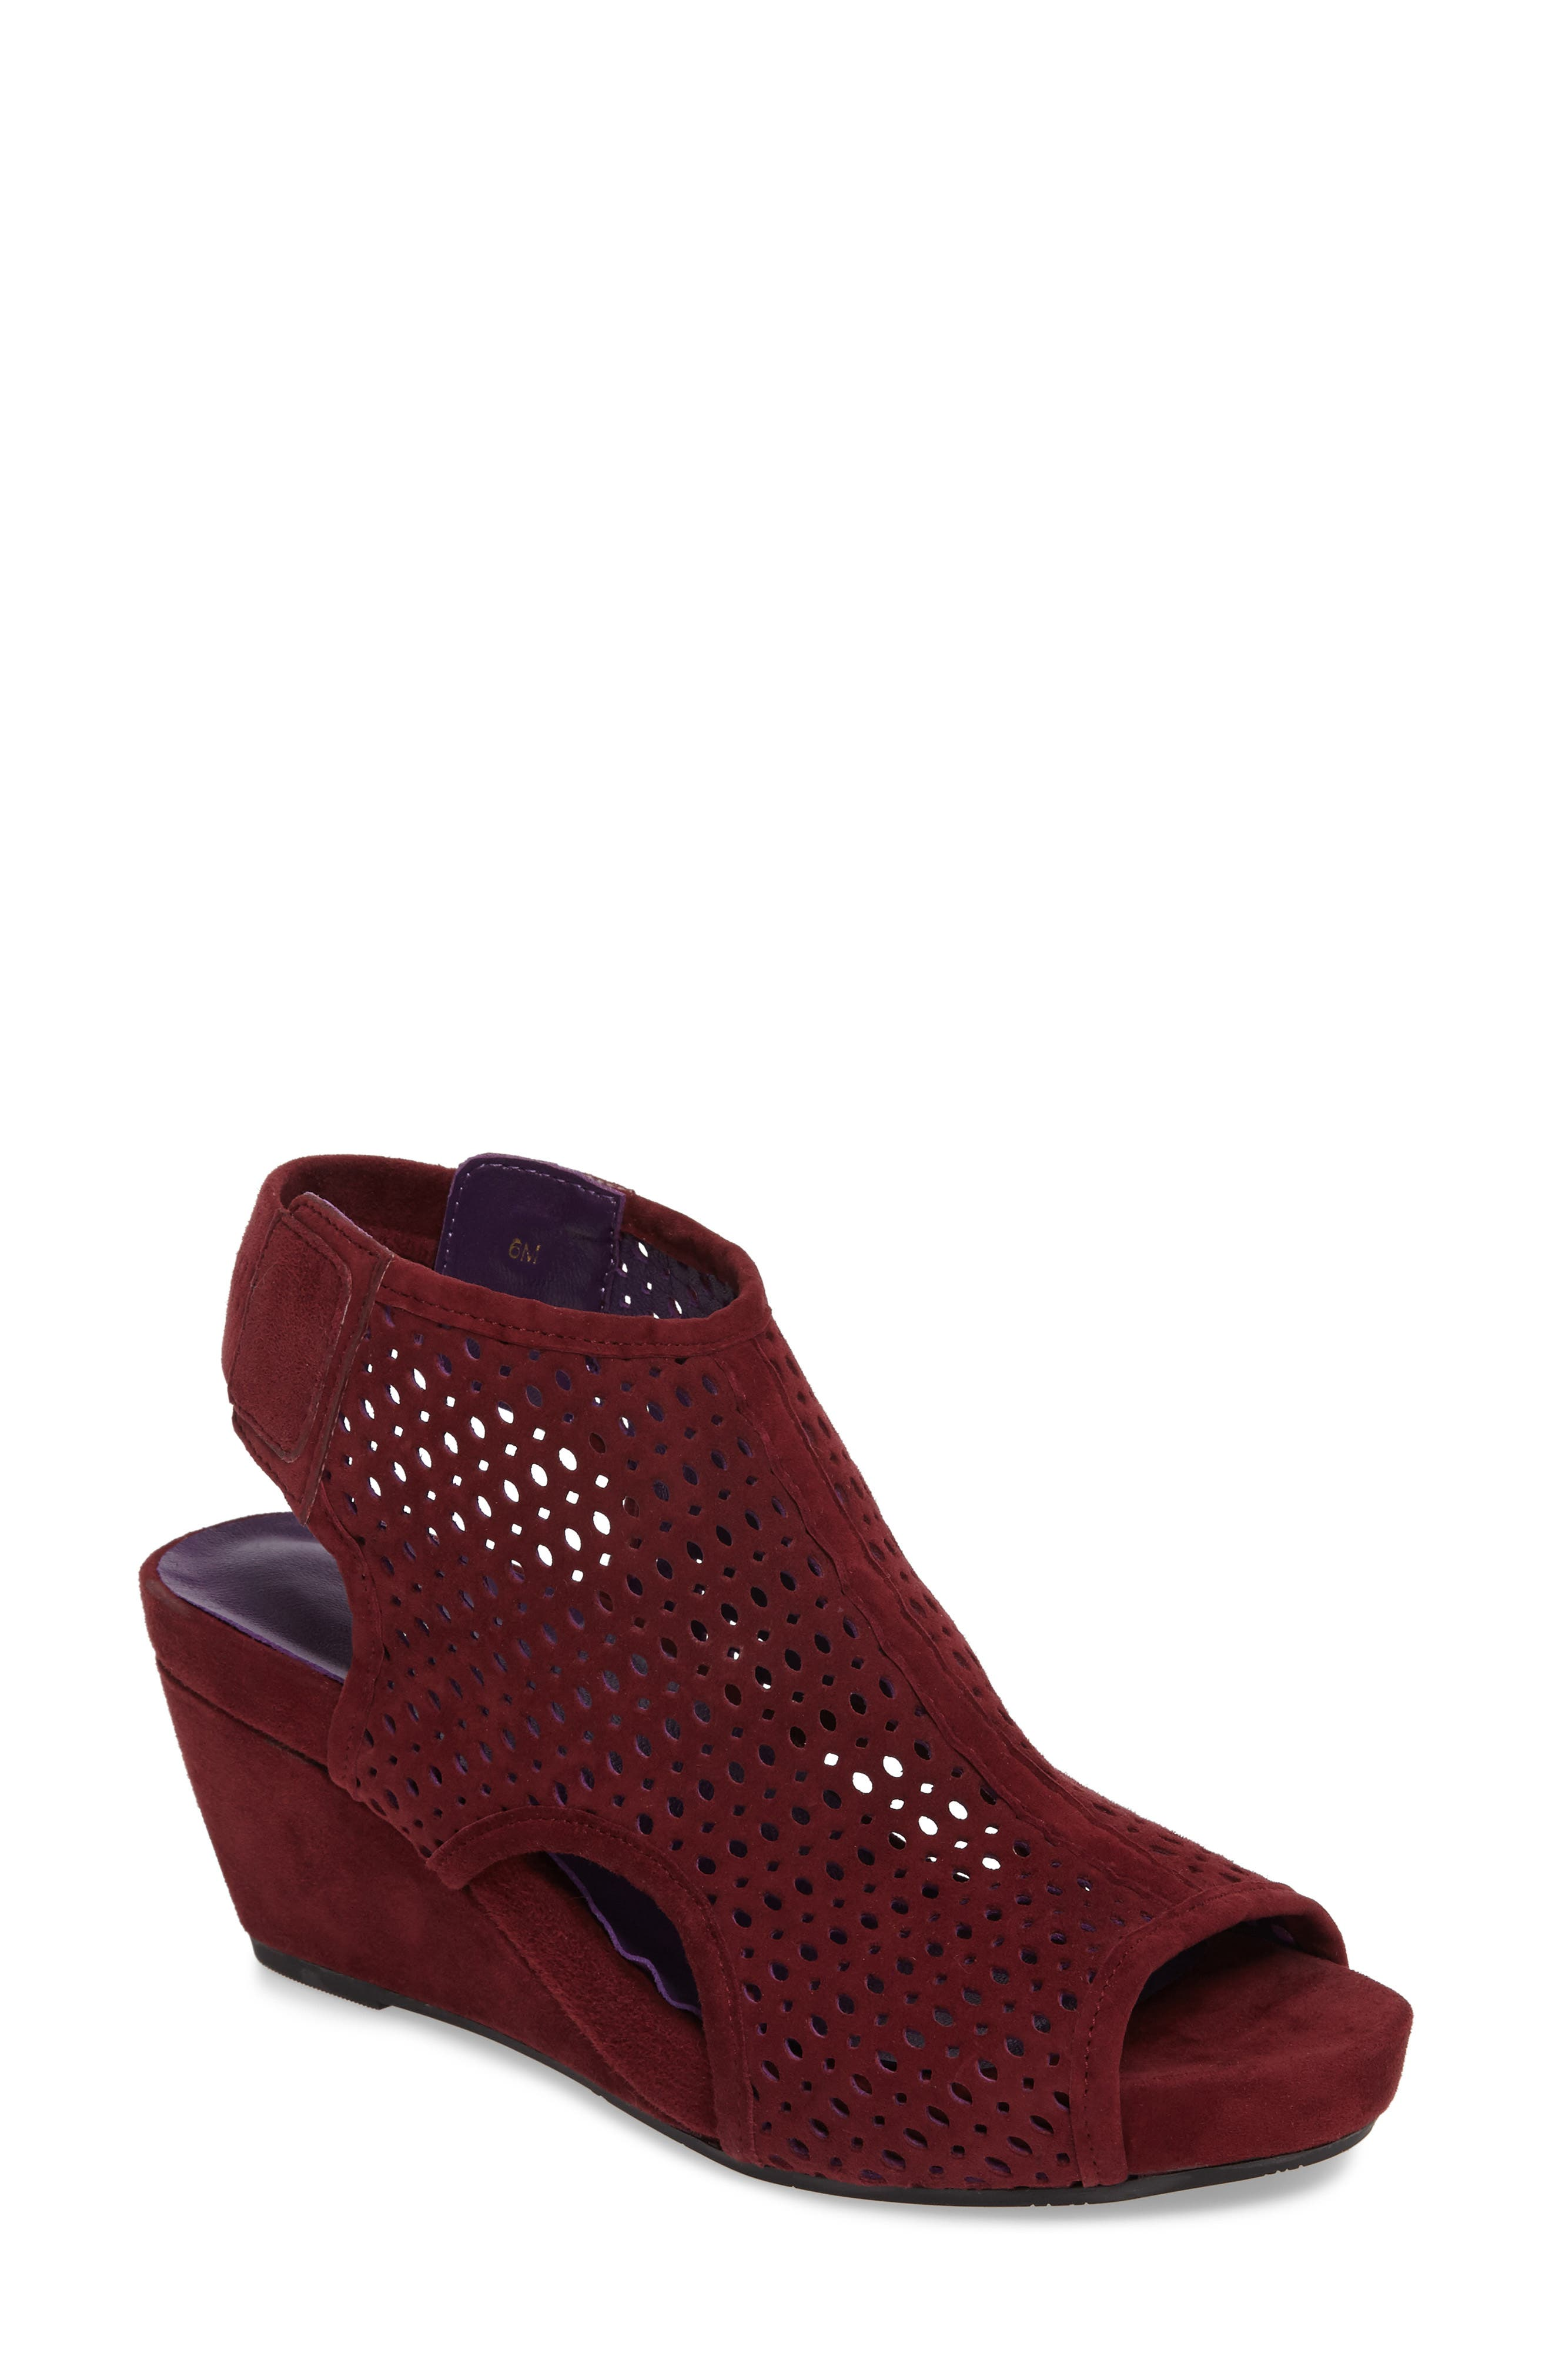 'Inez' Wedge Sandal,                             Main thumbnail 1, color,                             Red Suede